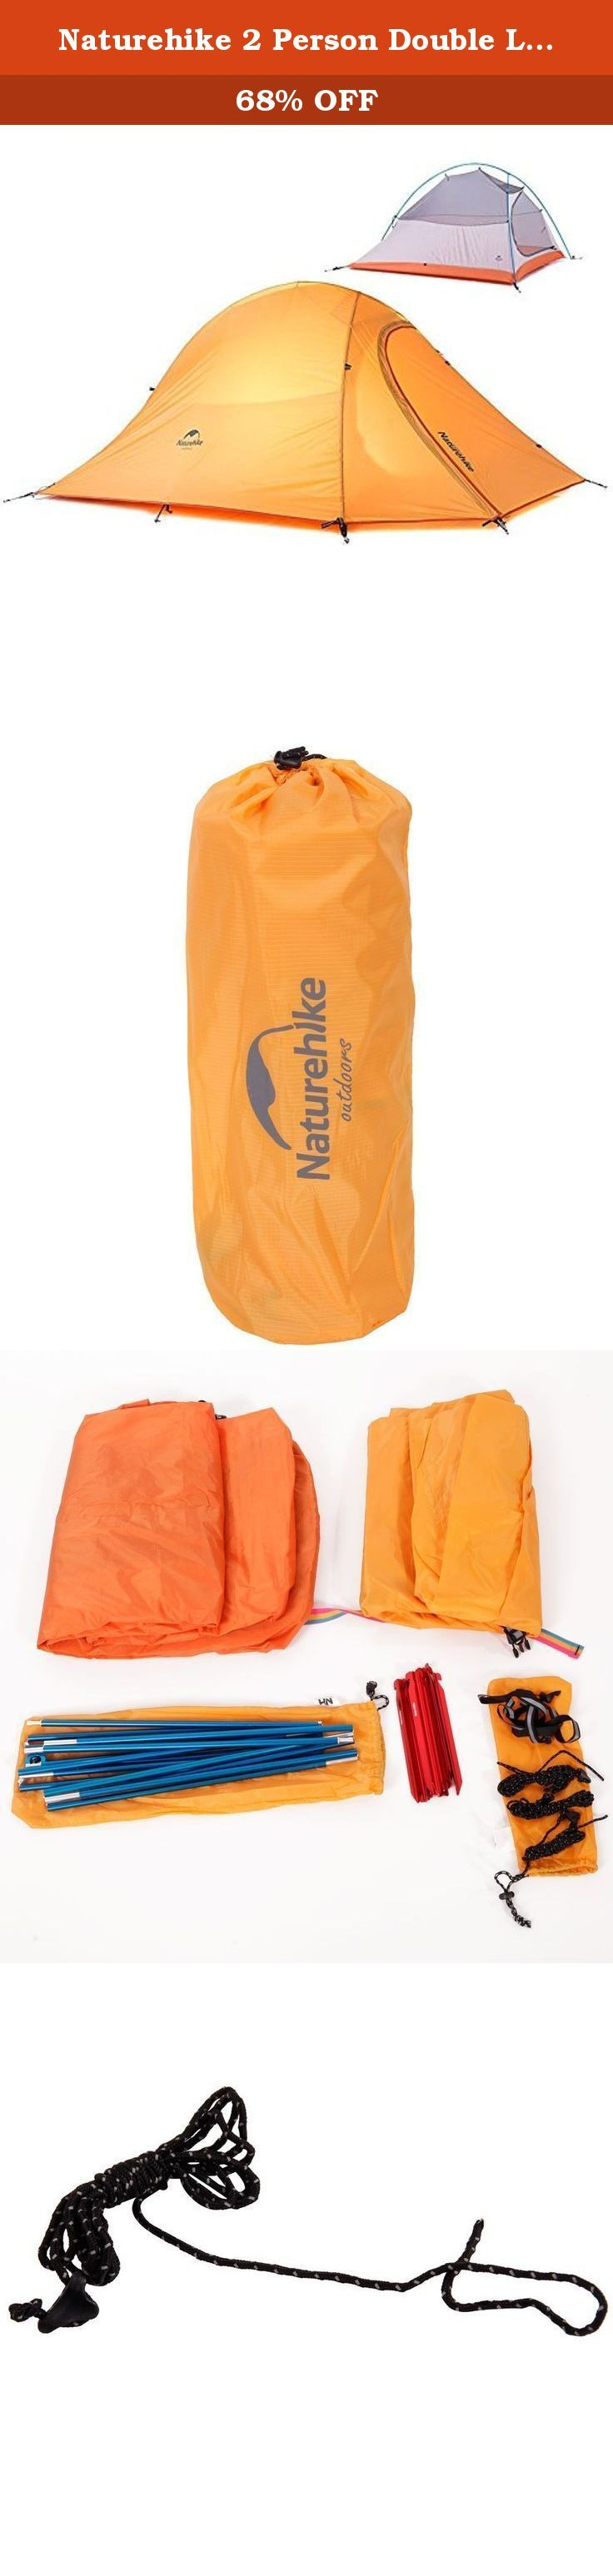 Naturehike 2 Person Double Layer Tent with Carry Bag for Camping Hiking Travel and More Lightweight Tent Light Orange. Item Specifications: 1. Inner space is large enough to sleep two people 2. Built with a hanger in the middle of tent for camp lamp and a mesh pocket for those of your small stuff 3. Material: Aluminum & Silica Gel 4. Tent Spatial Structure: Two Bedroom 5. Function: Warm, Ultra-Low Weight, Thin, Cycling 6. Color: Orange 7. Weight: 52.56oz / 1490g 8. Expand Dimensions…